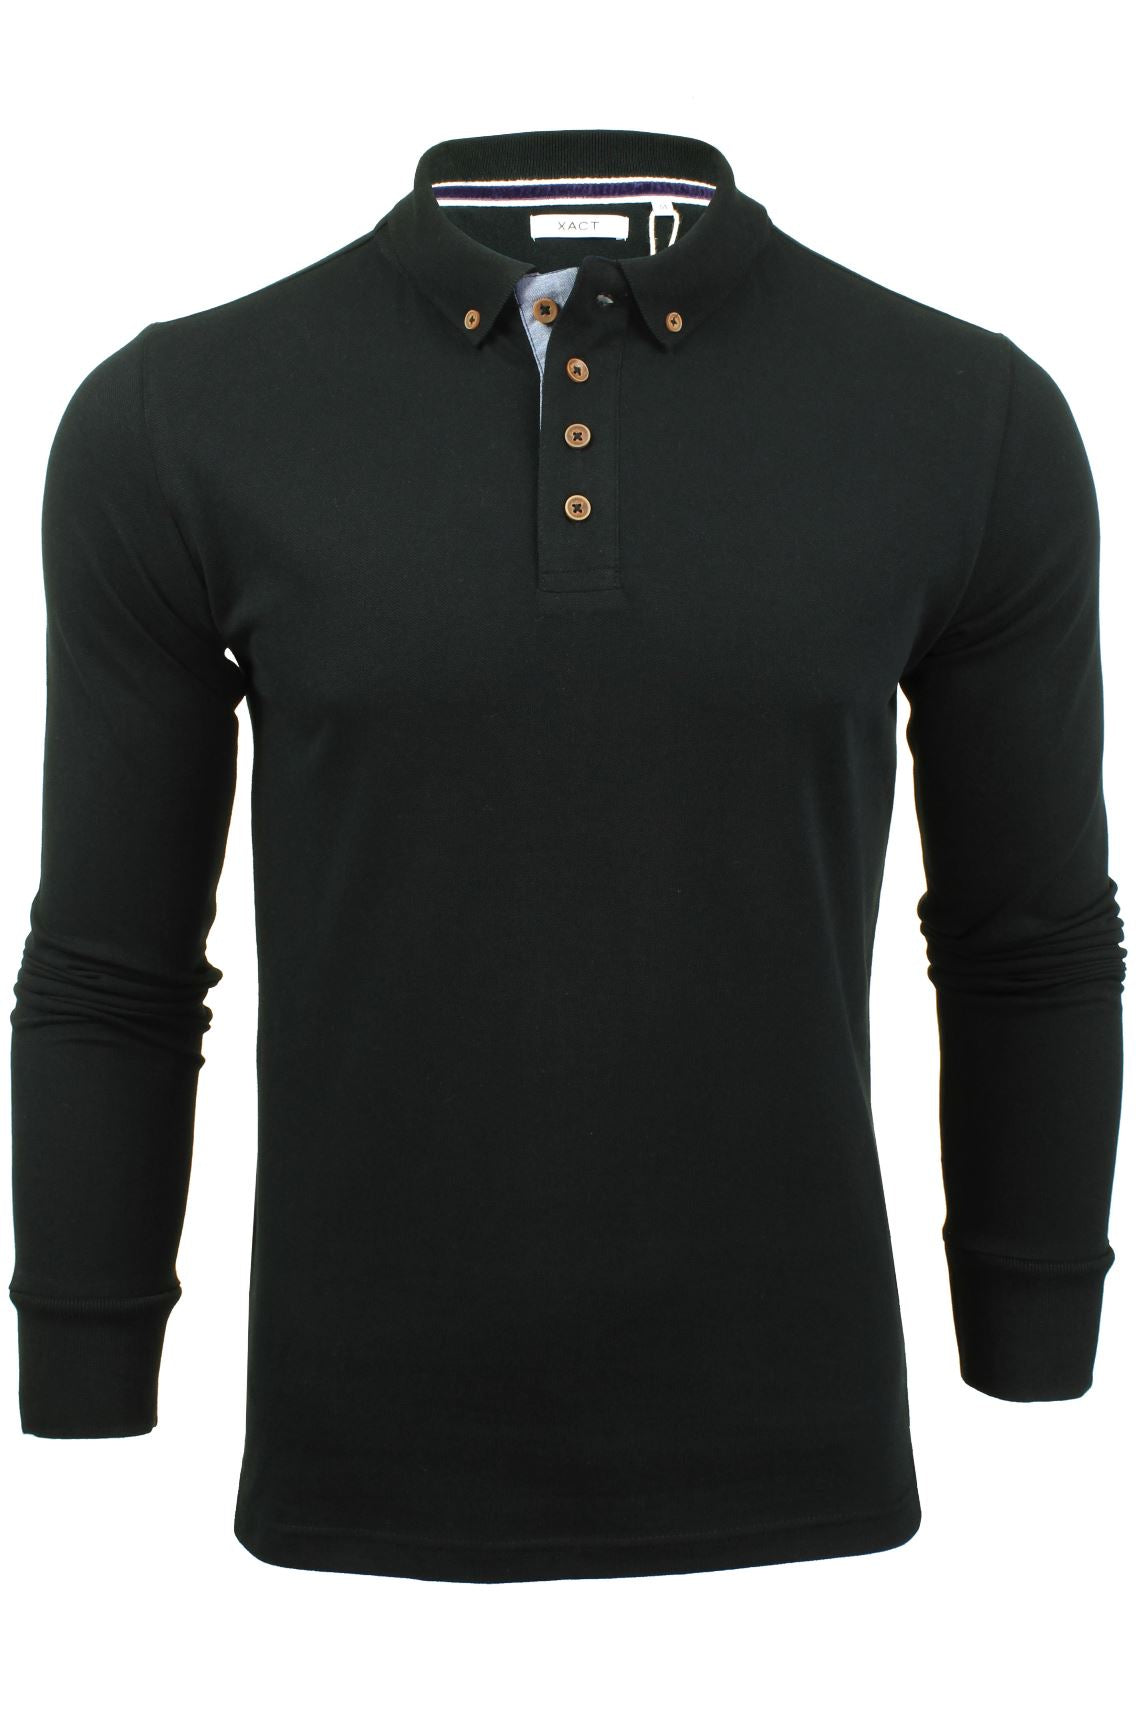 Mens Polo T-Shirt by Xact Pique Long Sleeved_01_XP1003_Black